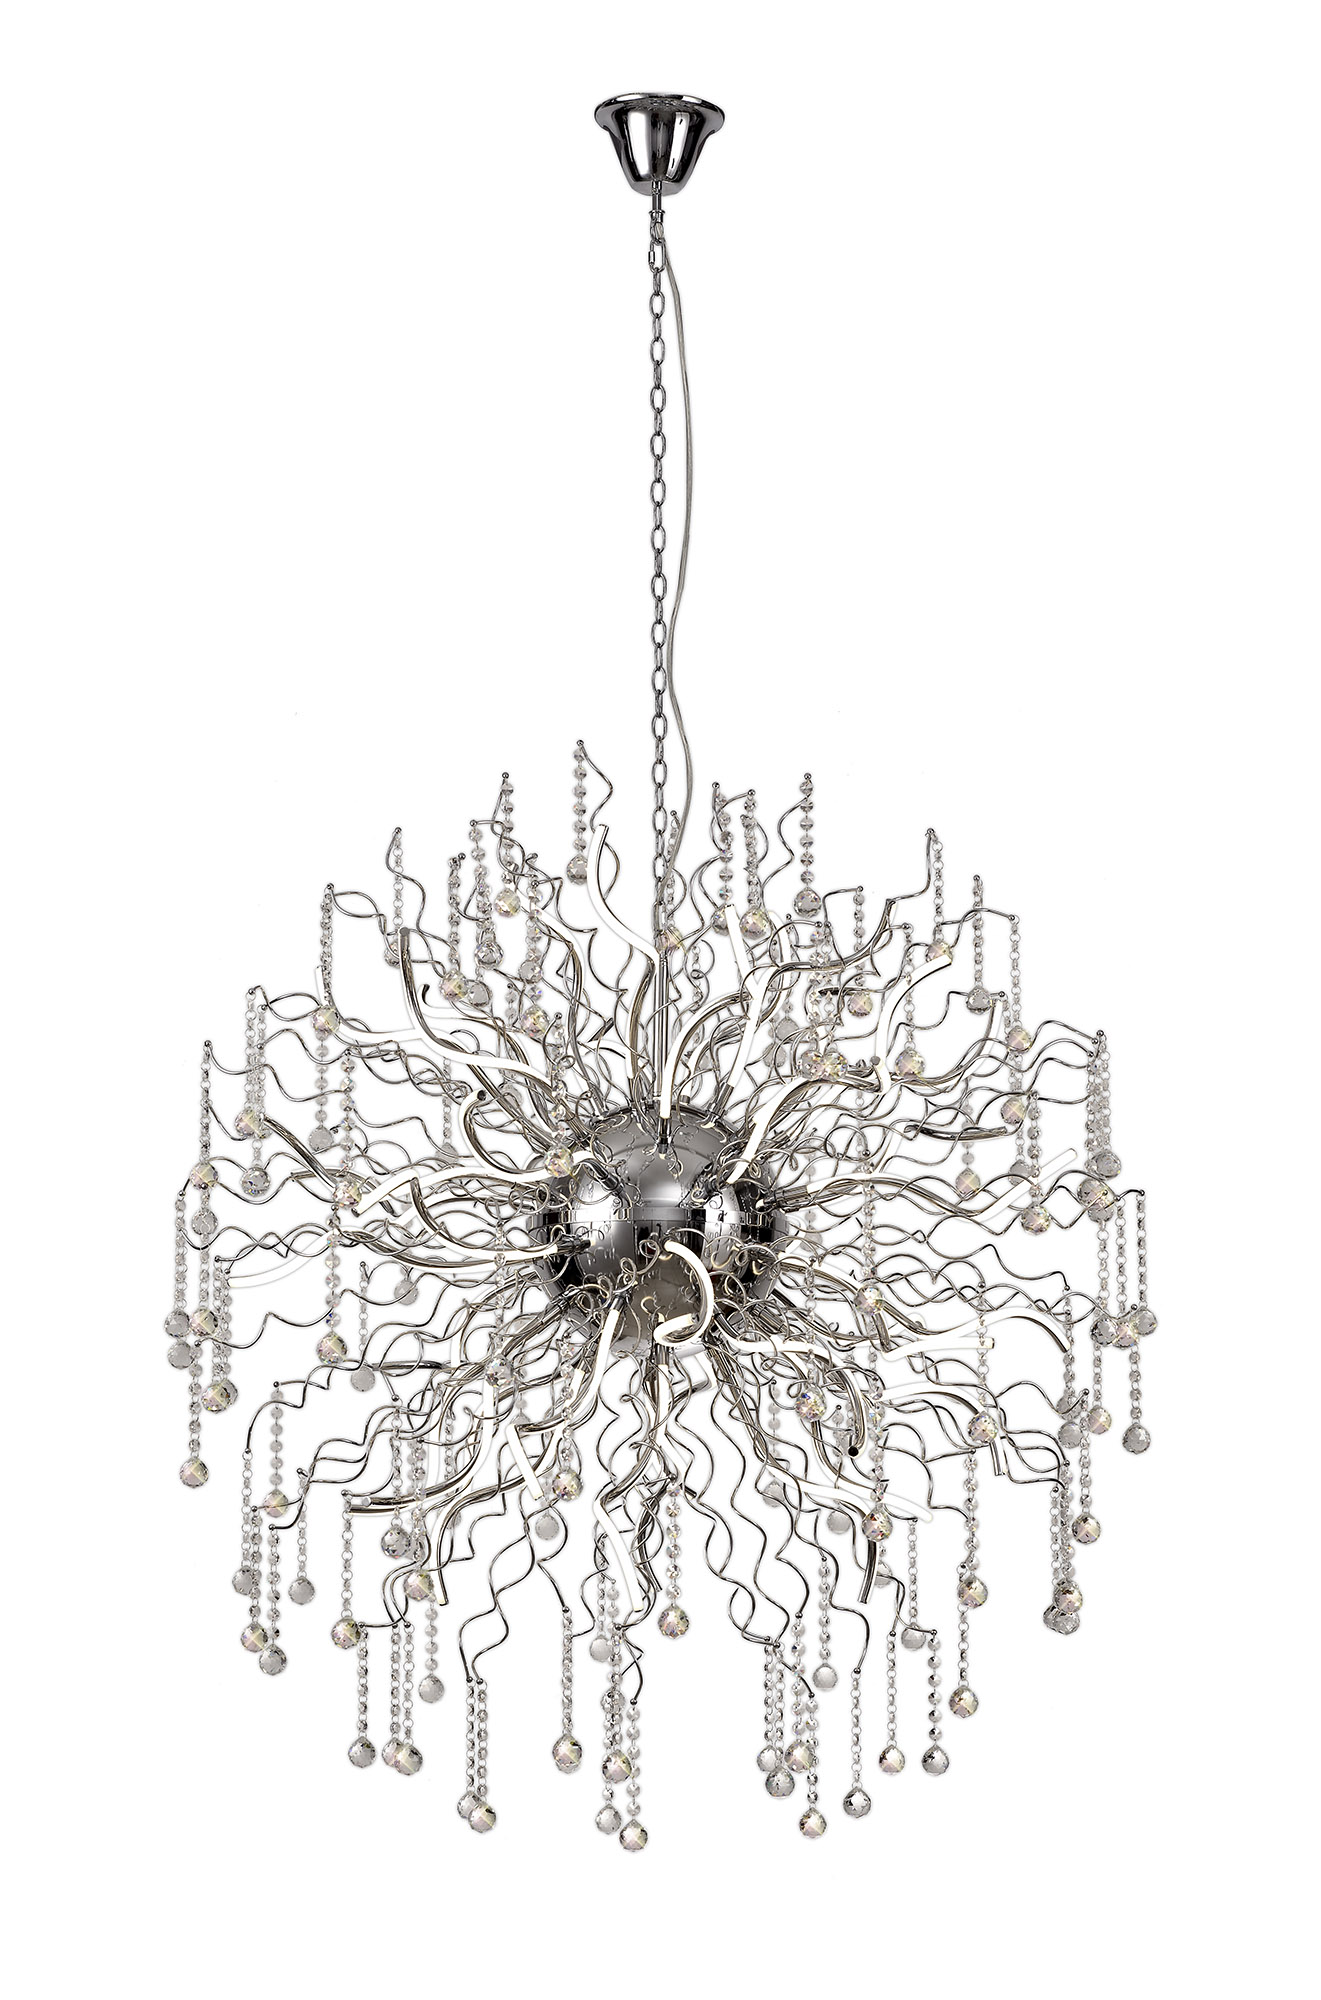 Dimmable Pendant, 40 x 3.4W LED, 3000K, 10500lm, Polished Chrome, 3yrs Warranty